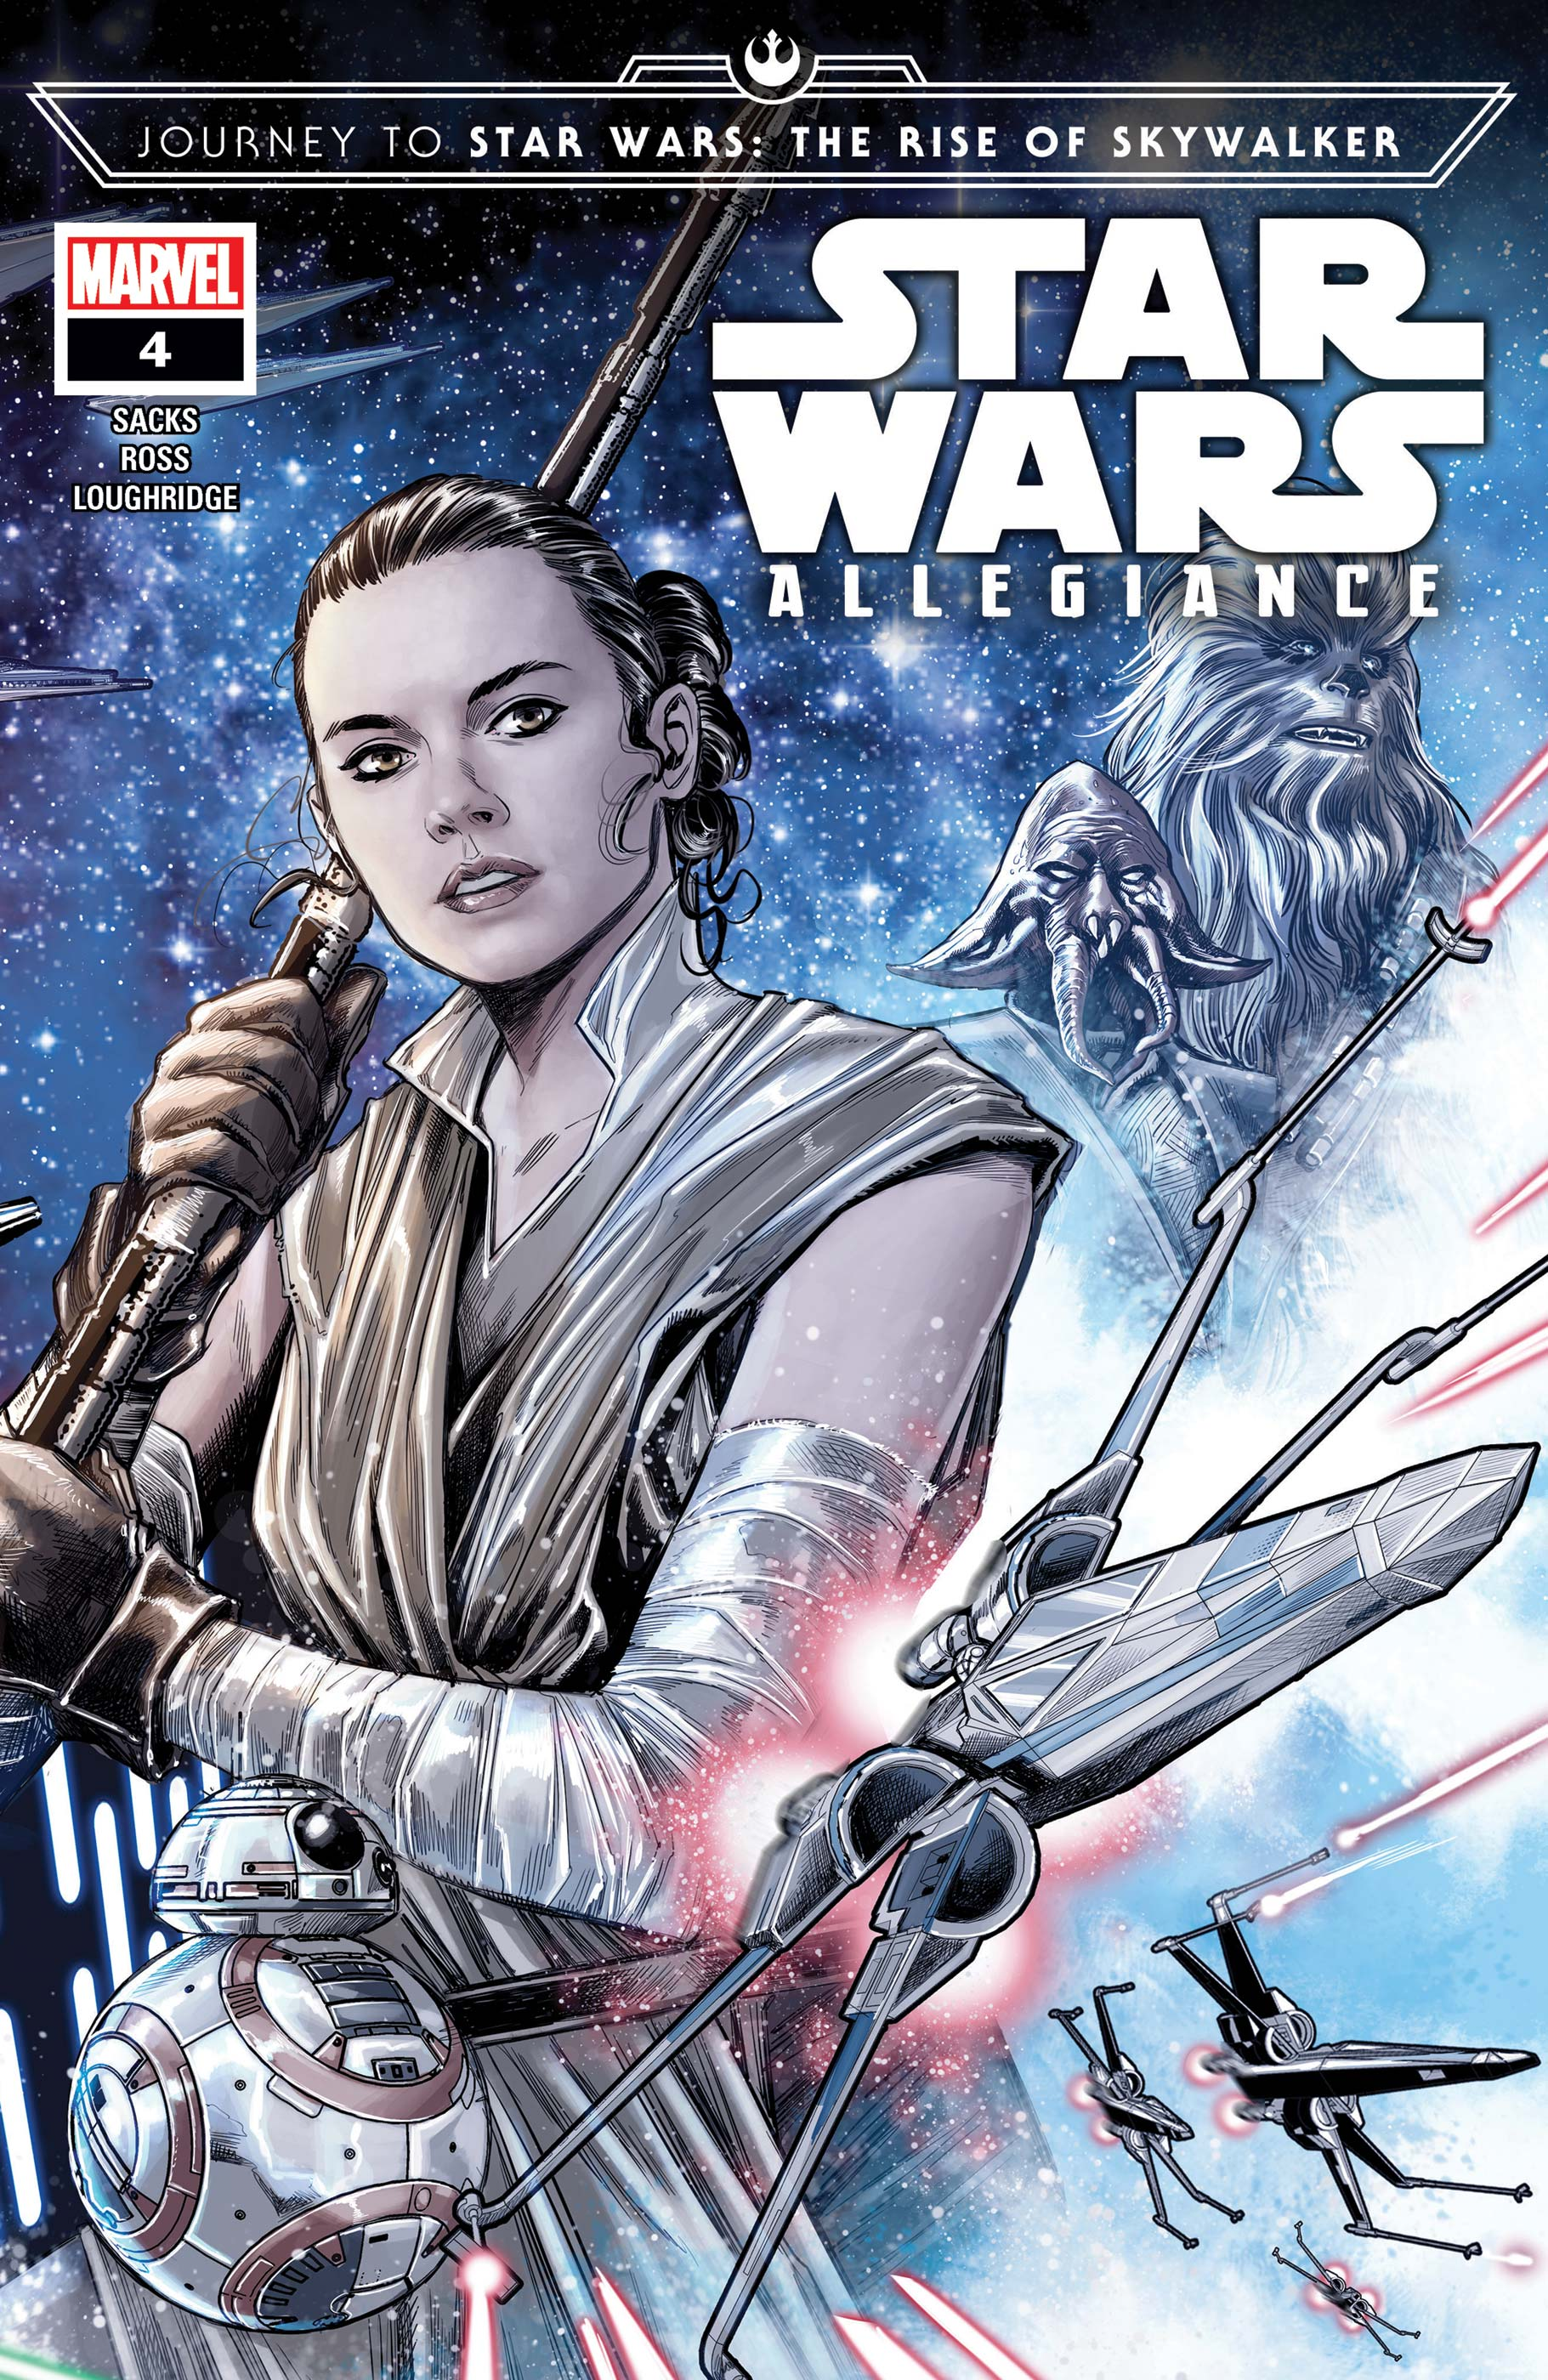 Journey to Star Wars: The Rise of Skywalker - Allegiance (2019) #4